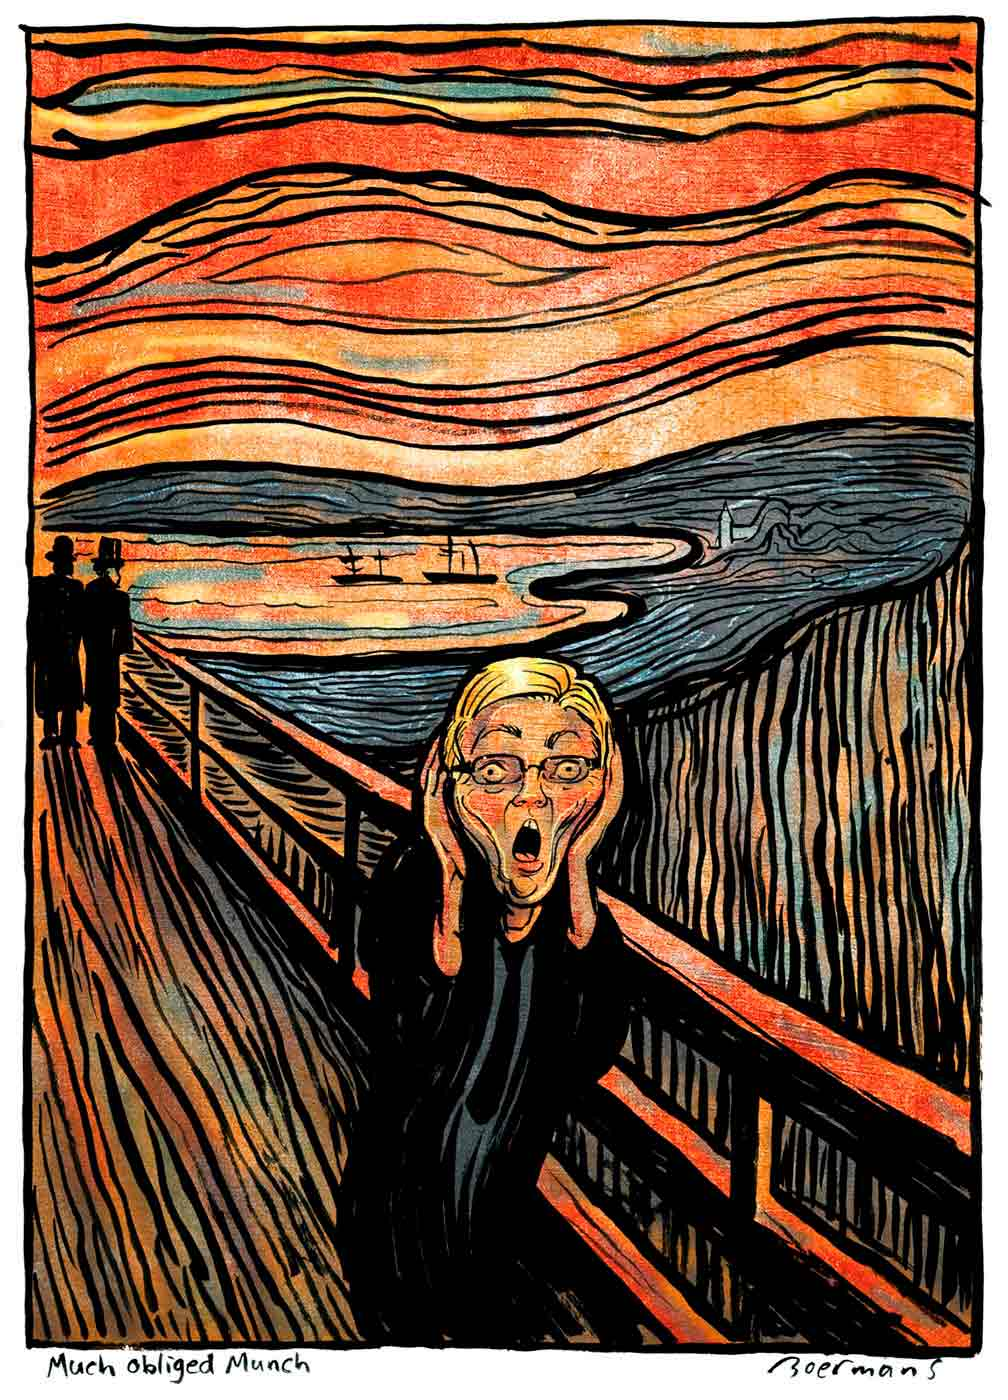 A colour cartoon based upon the painting The Scream, by Edvard Munch. Kevin Rudd is seen standing on a long pier. He faces the viewer; he has both hands at the side of his head and his mouth open as though he were screaming. In the background on the pier stand two people in silhouette. Beyond them is a harbour with two sailing ships on it. The sky is orange and broken into layers by thick, dark wavy lines. Other dark lines appear in the landscape around the harbour. The use of the dark lines reinforces the uneasy feelings suggested by the cartoon.  - click to view larger image